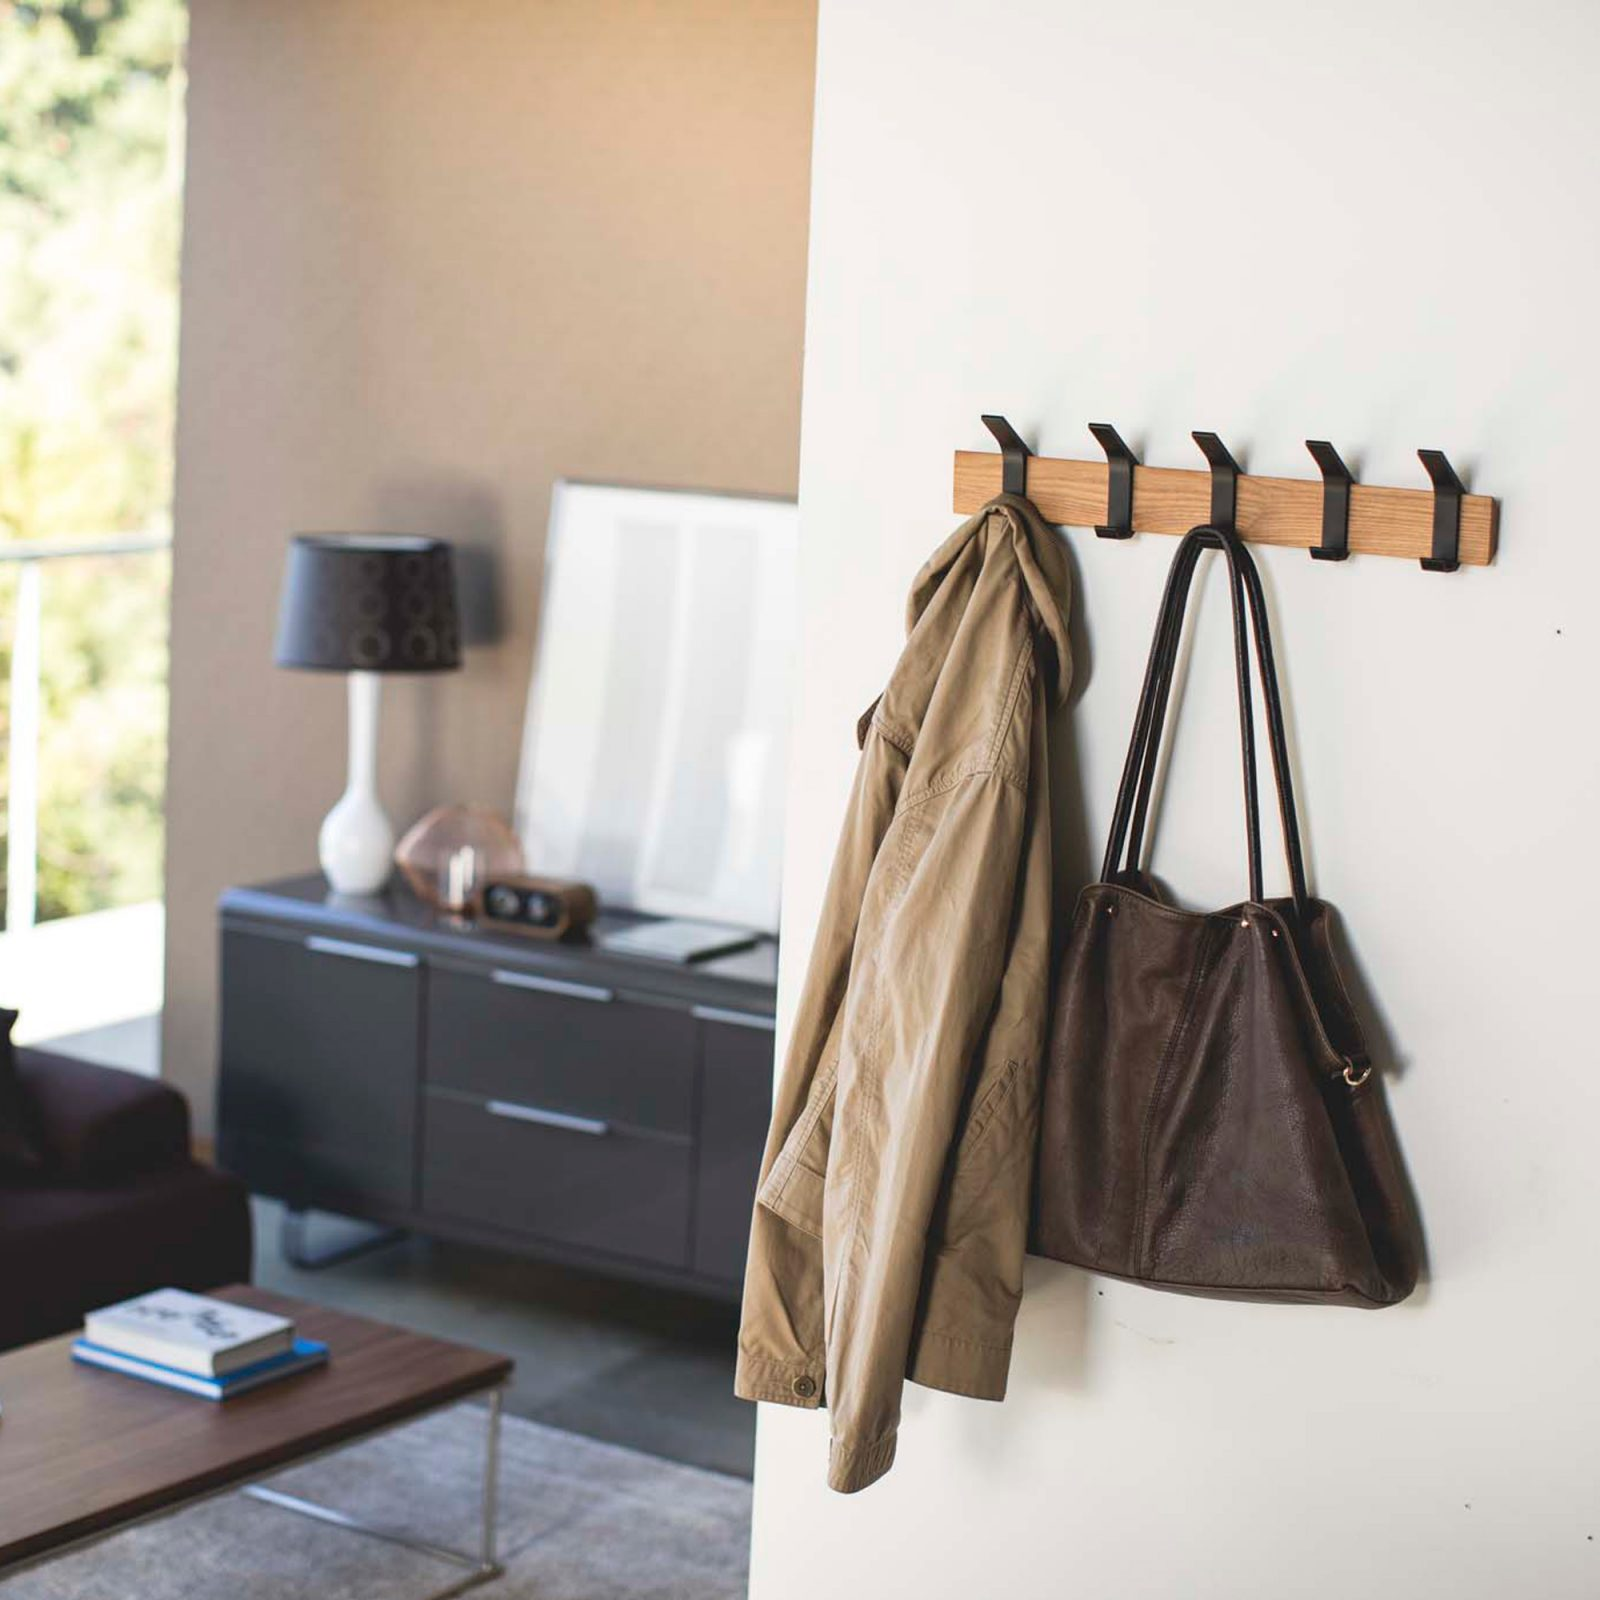 rin-wall-mounted-coat-hanger-brown-2